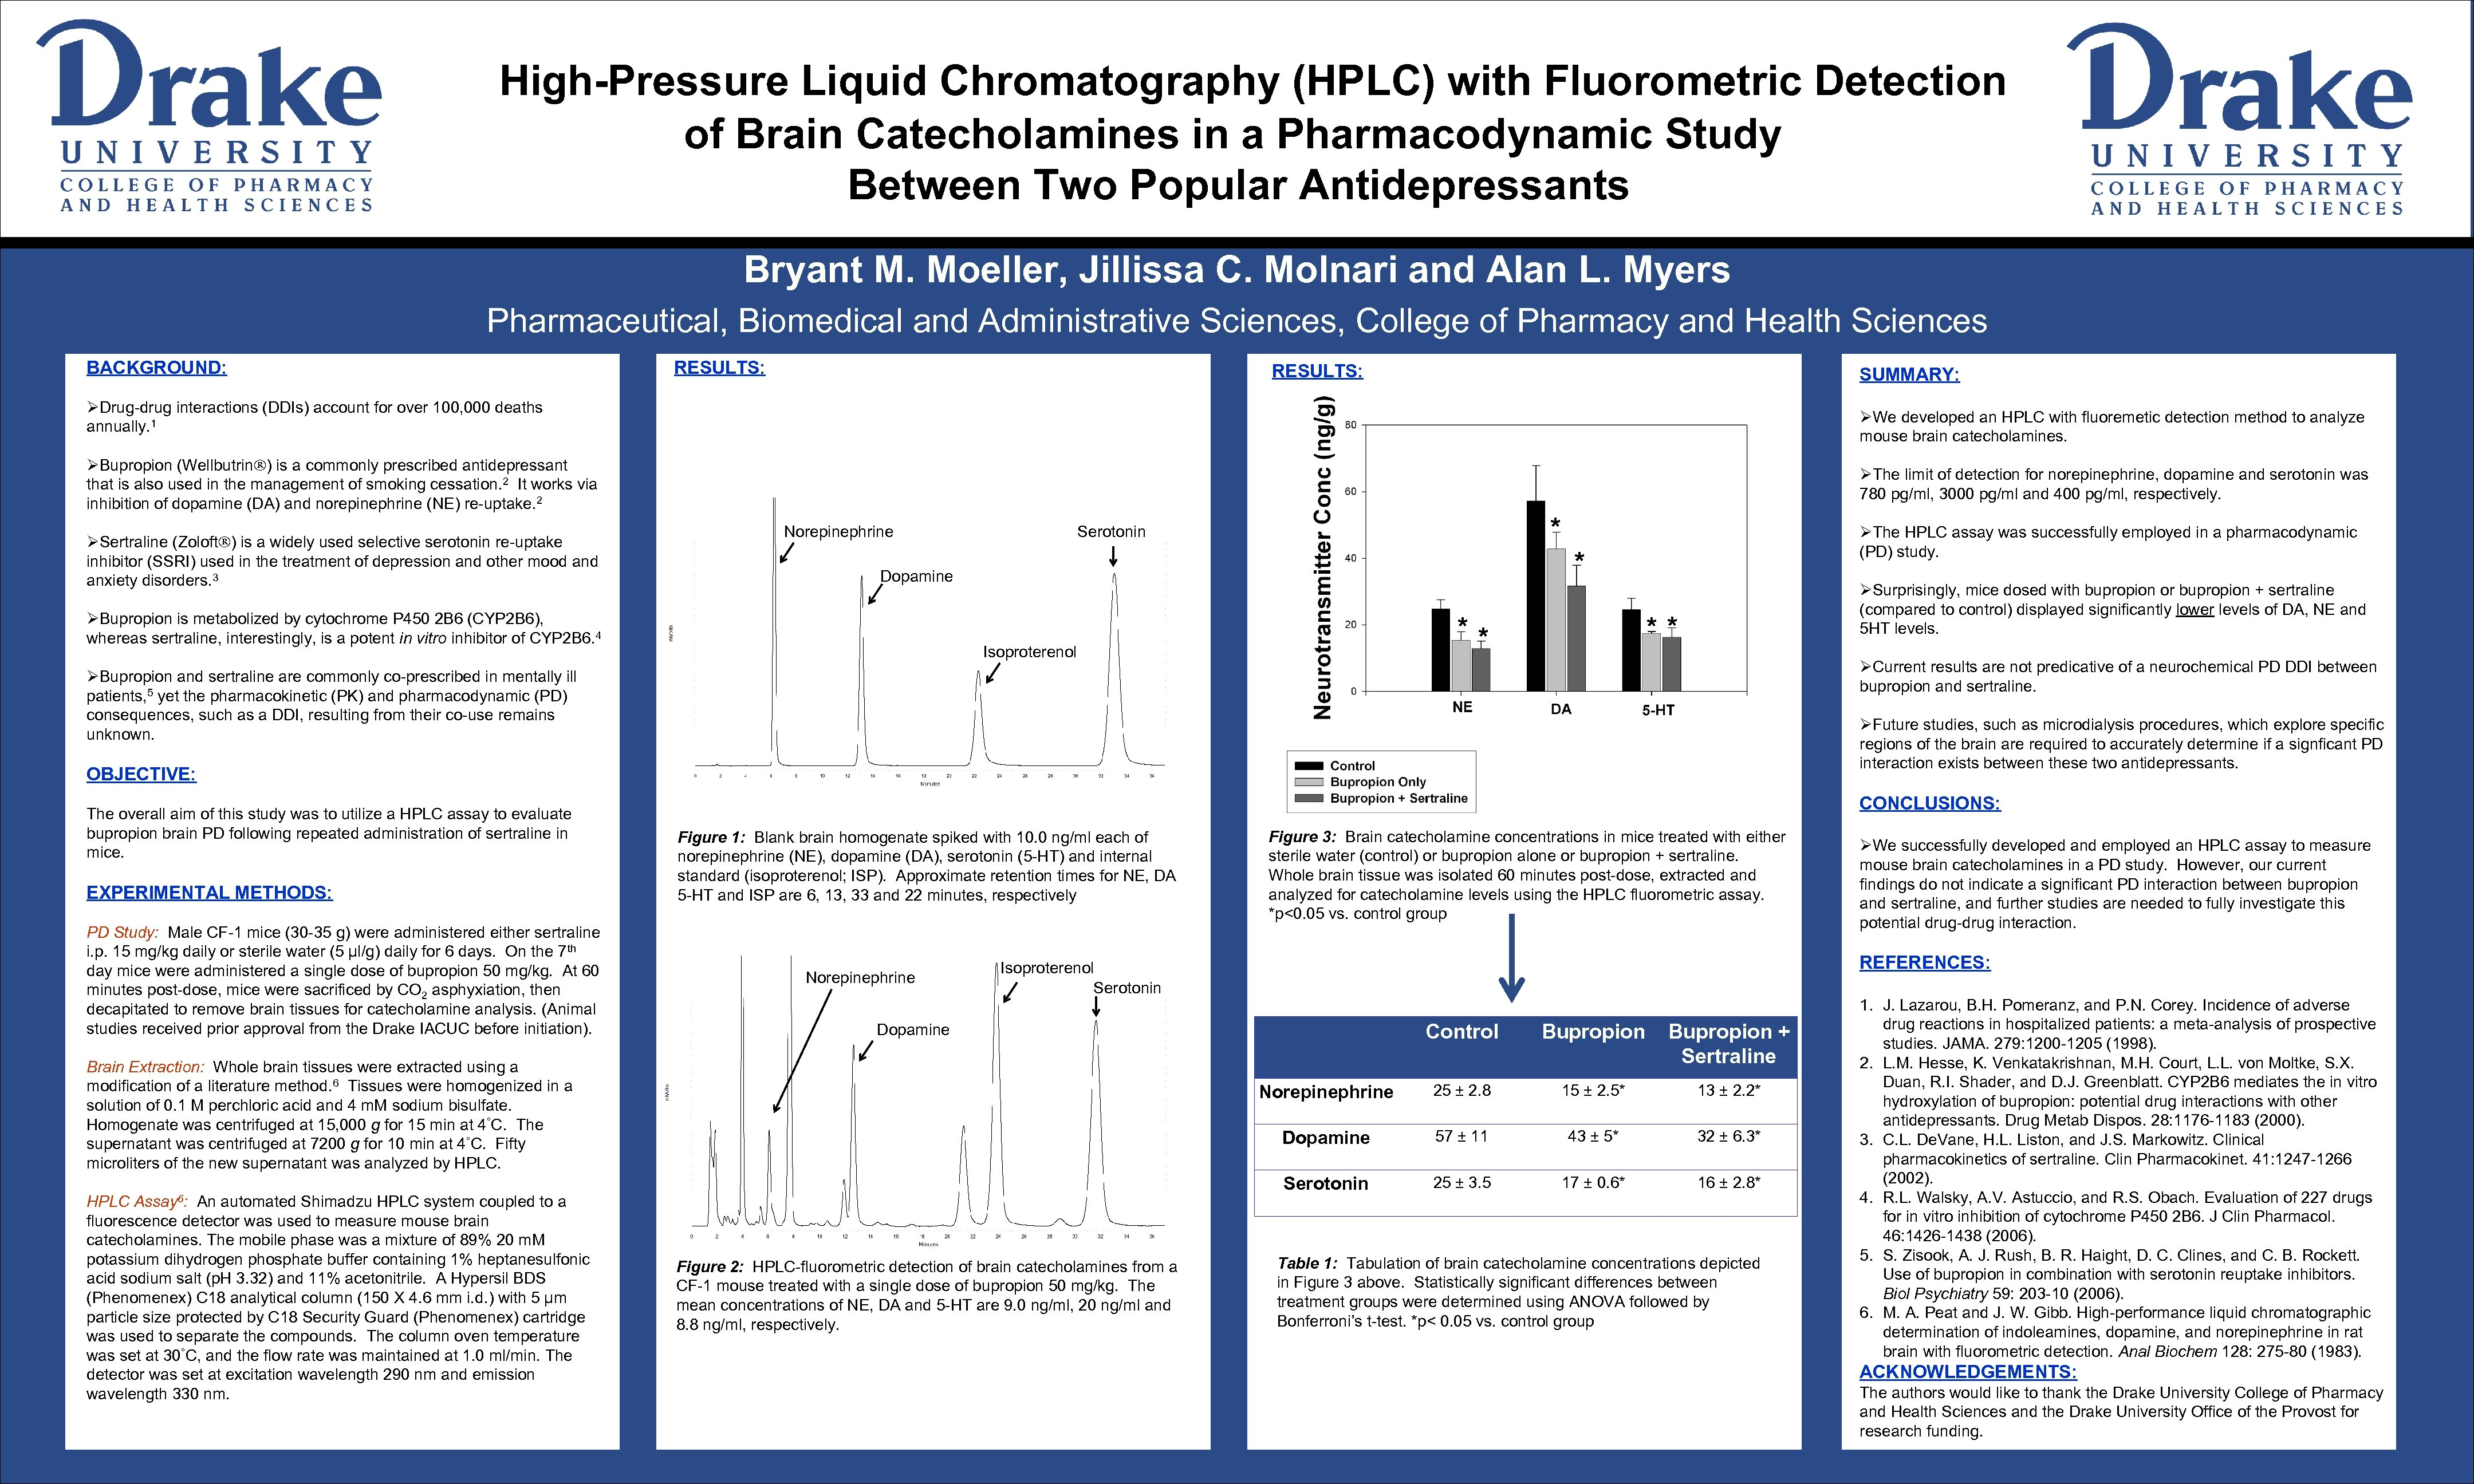 High-Pressure Liquid Chromatography (HPLC) with Fluorometric Detection of Brain Catecholamines in a Pharmacodynamic Study